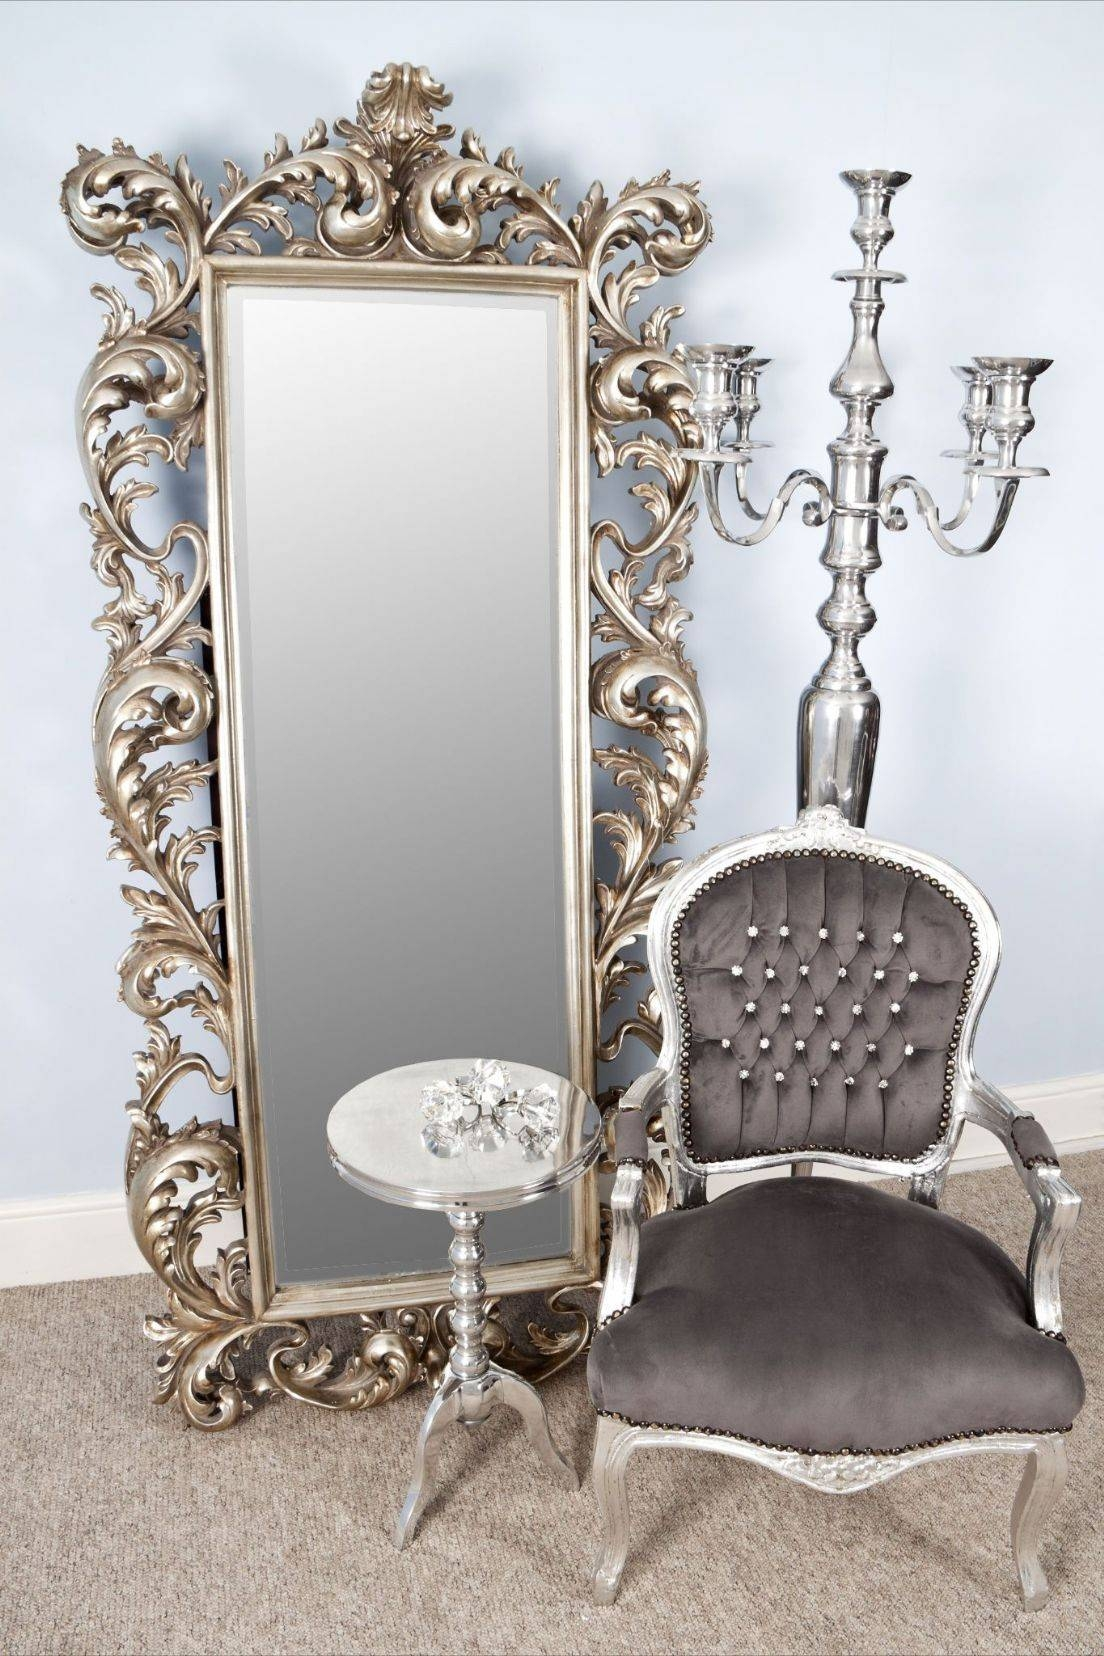 Rococo Mirrors | Exclusive Mirrors regarding Big Ornate Mirrors (Image 15 of 15)